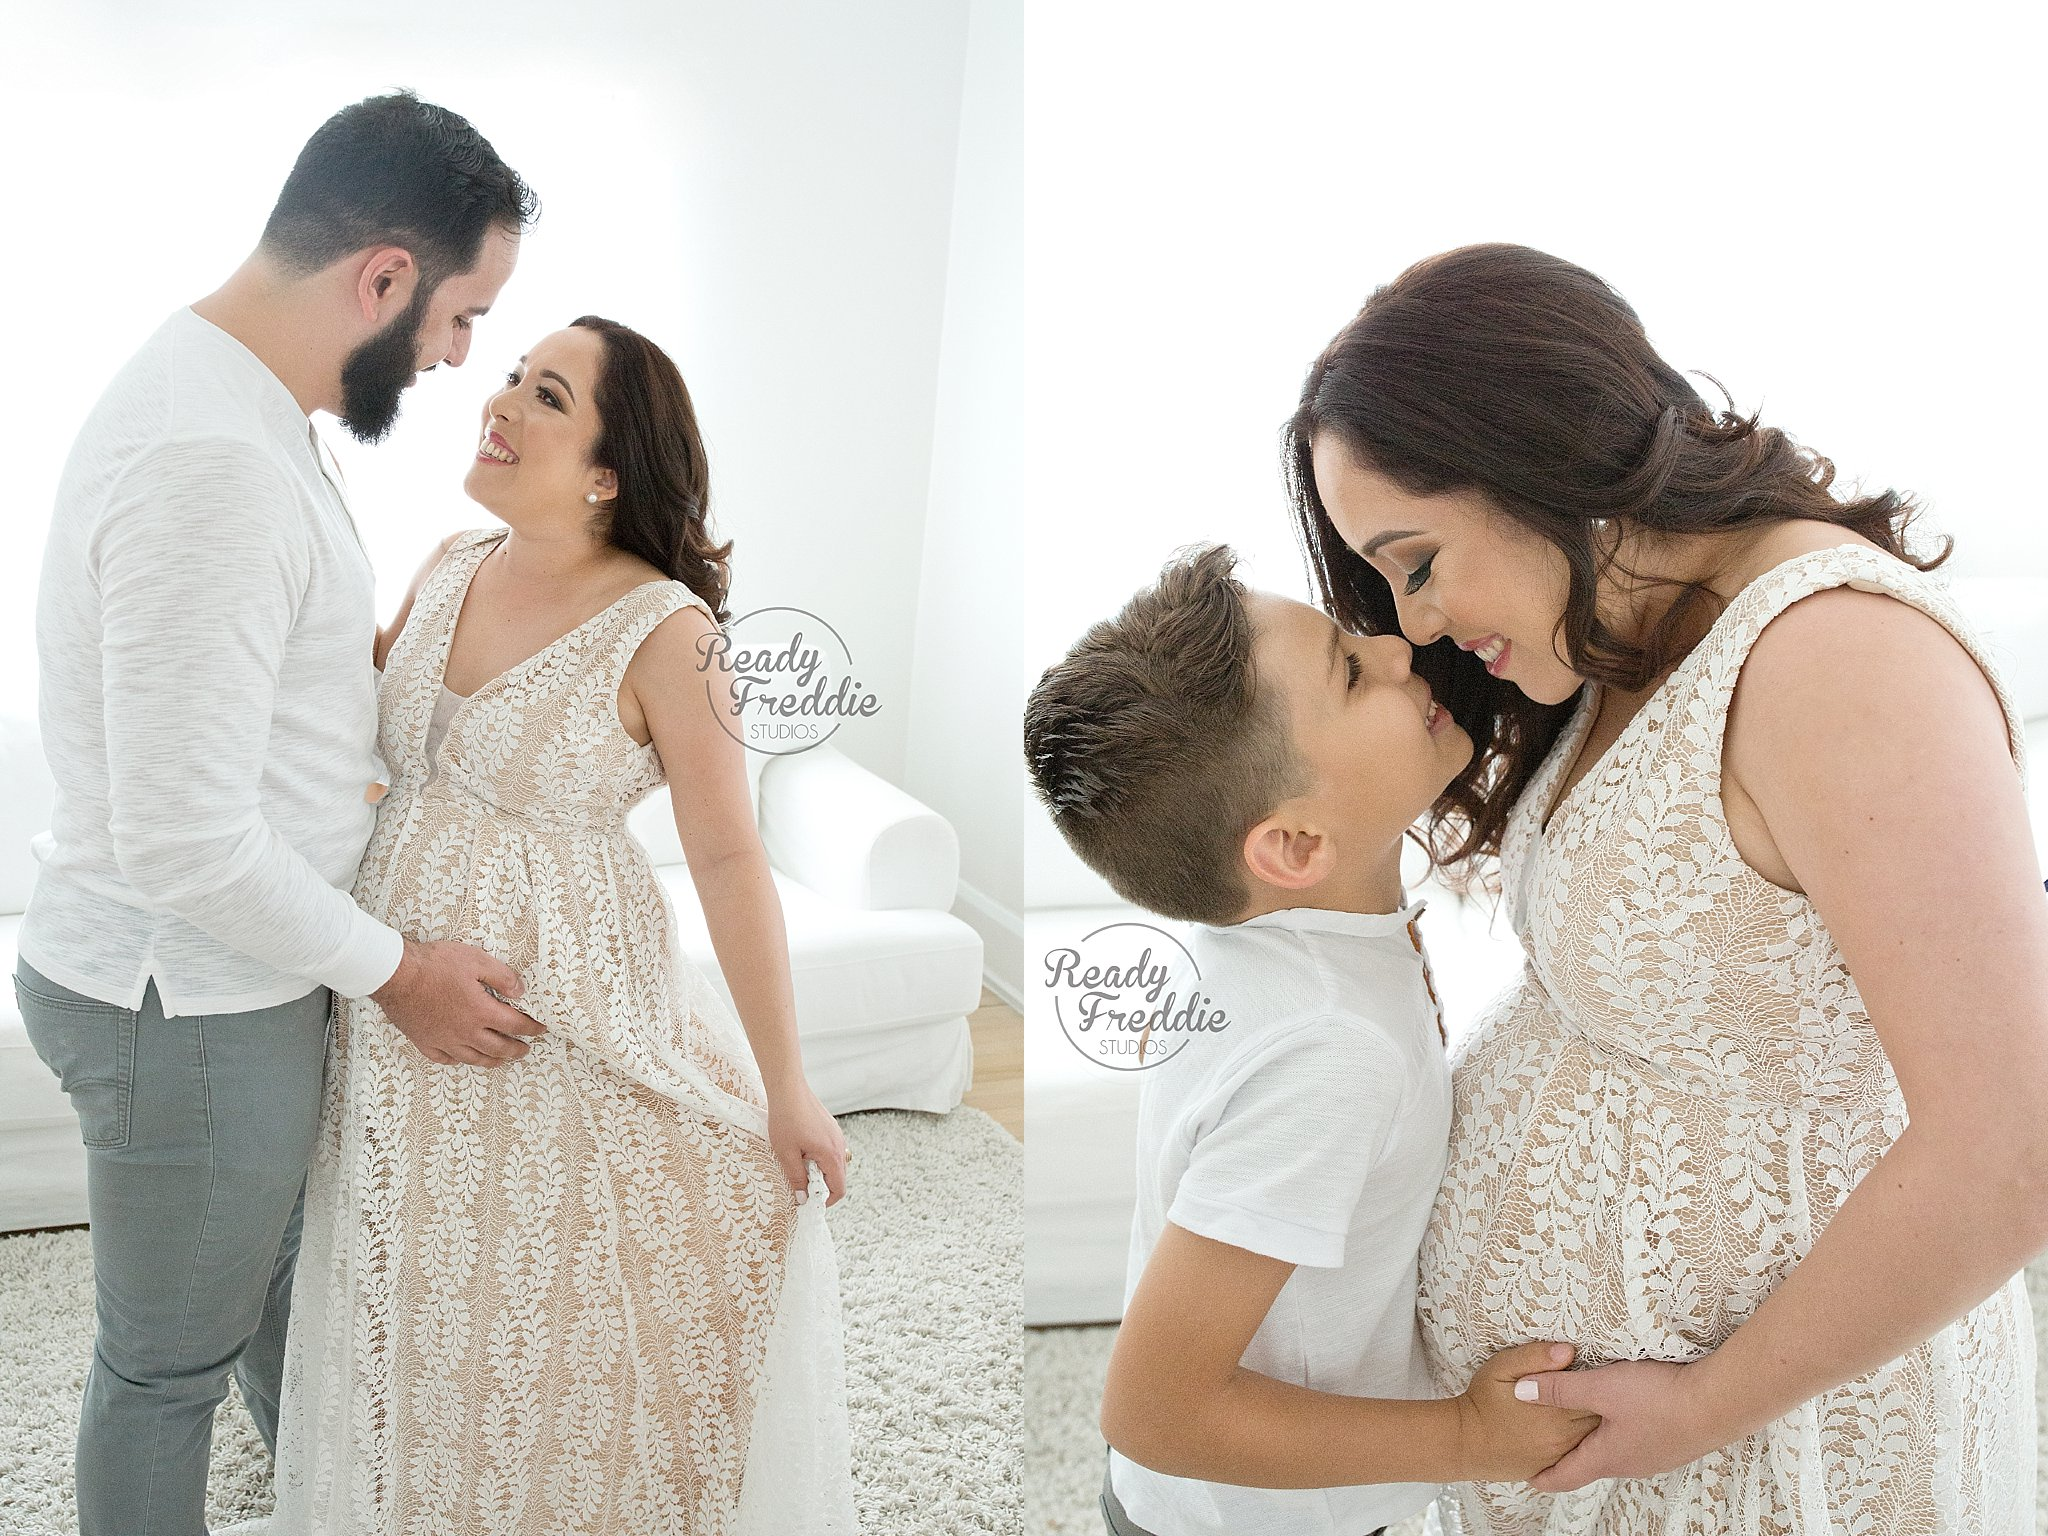 Happy candid maternity poses - Best Maternity Photographer in Miami, FL.